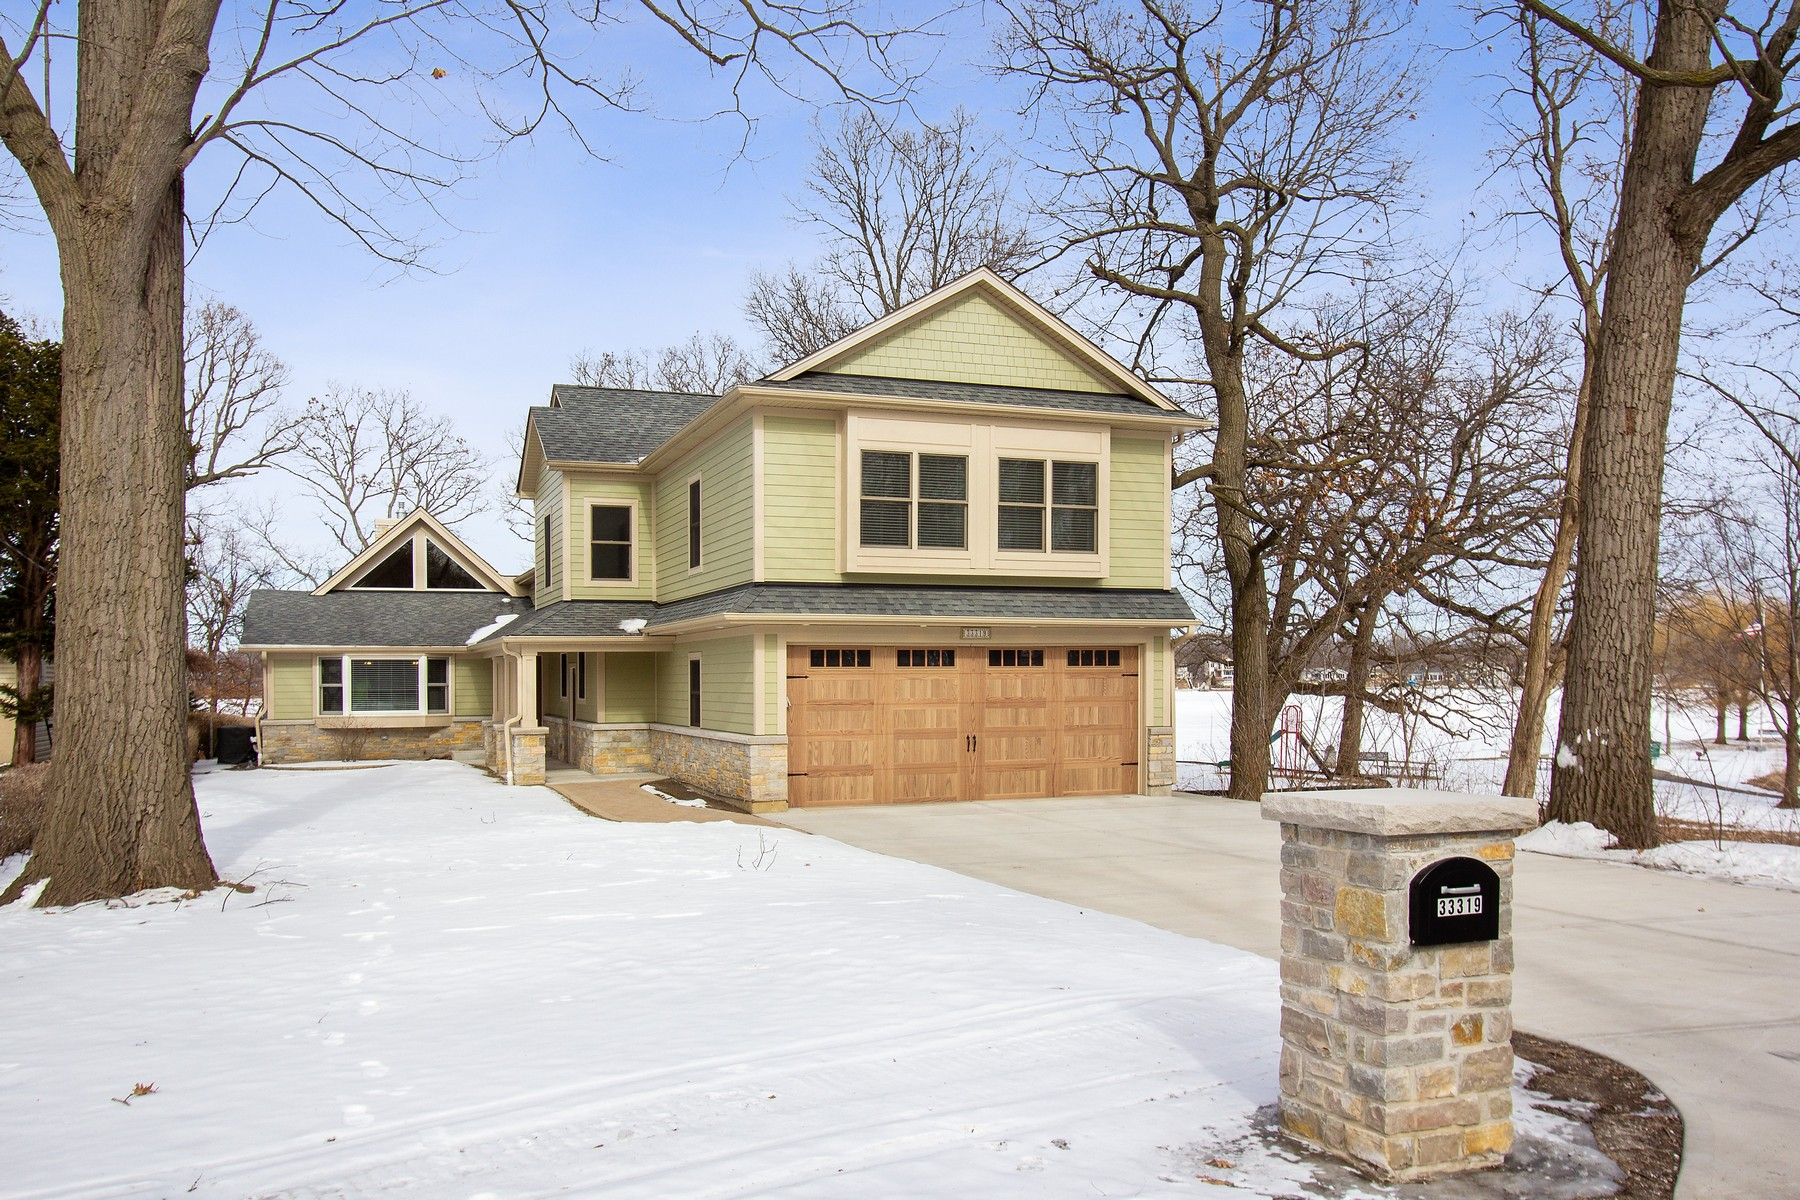 Single Family Home for Sale at Stunning Lakefront Home 33319 N Rule Court Wildwood, Illinois 60030 United States